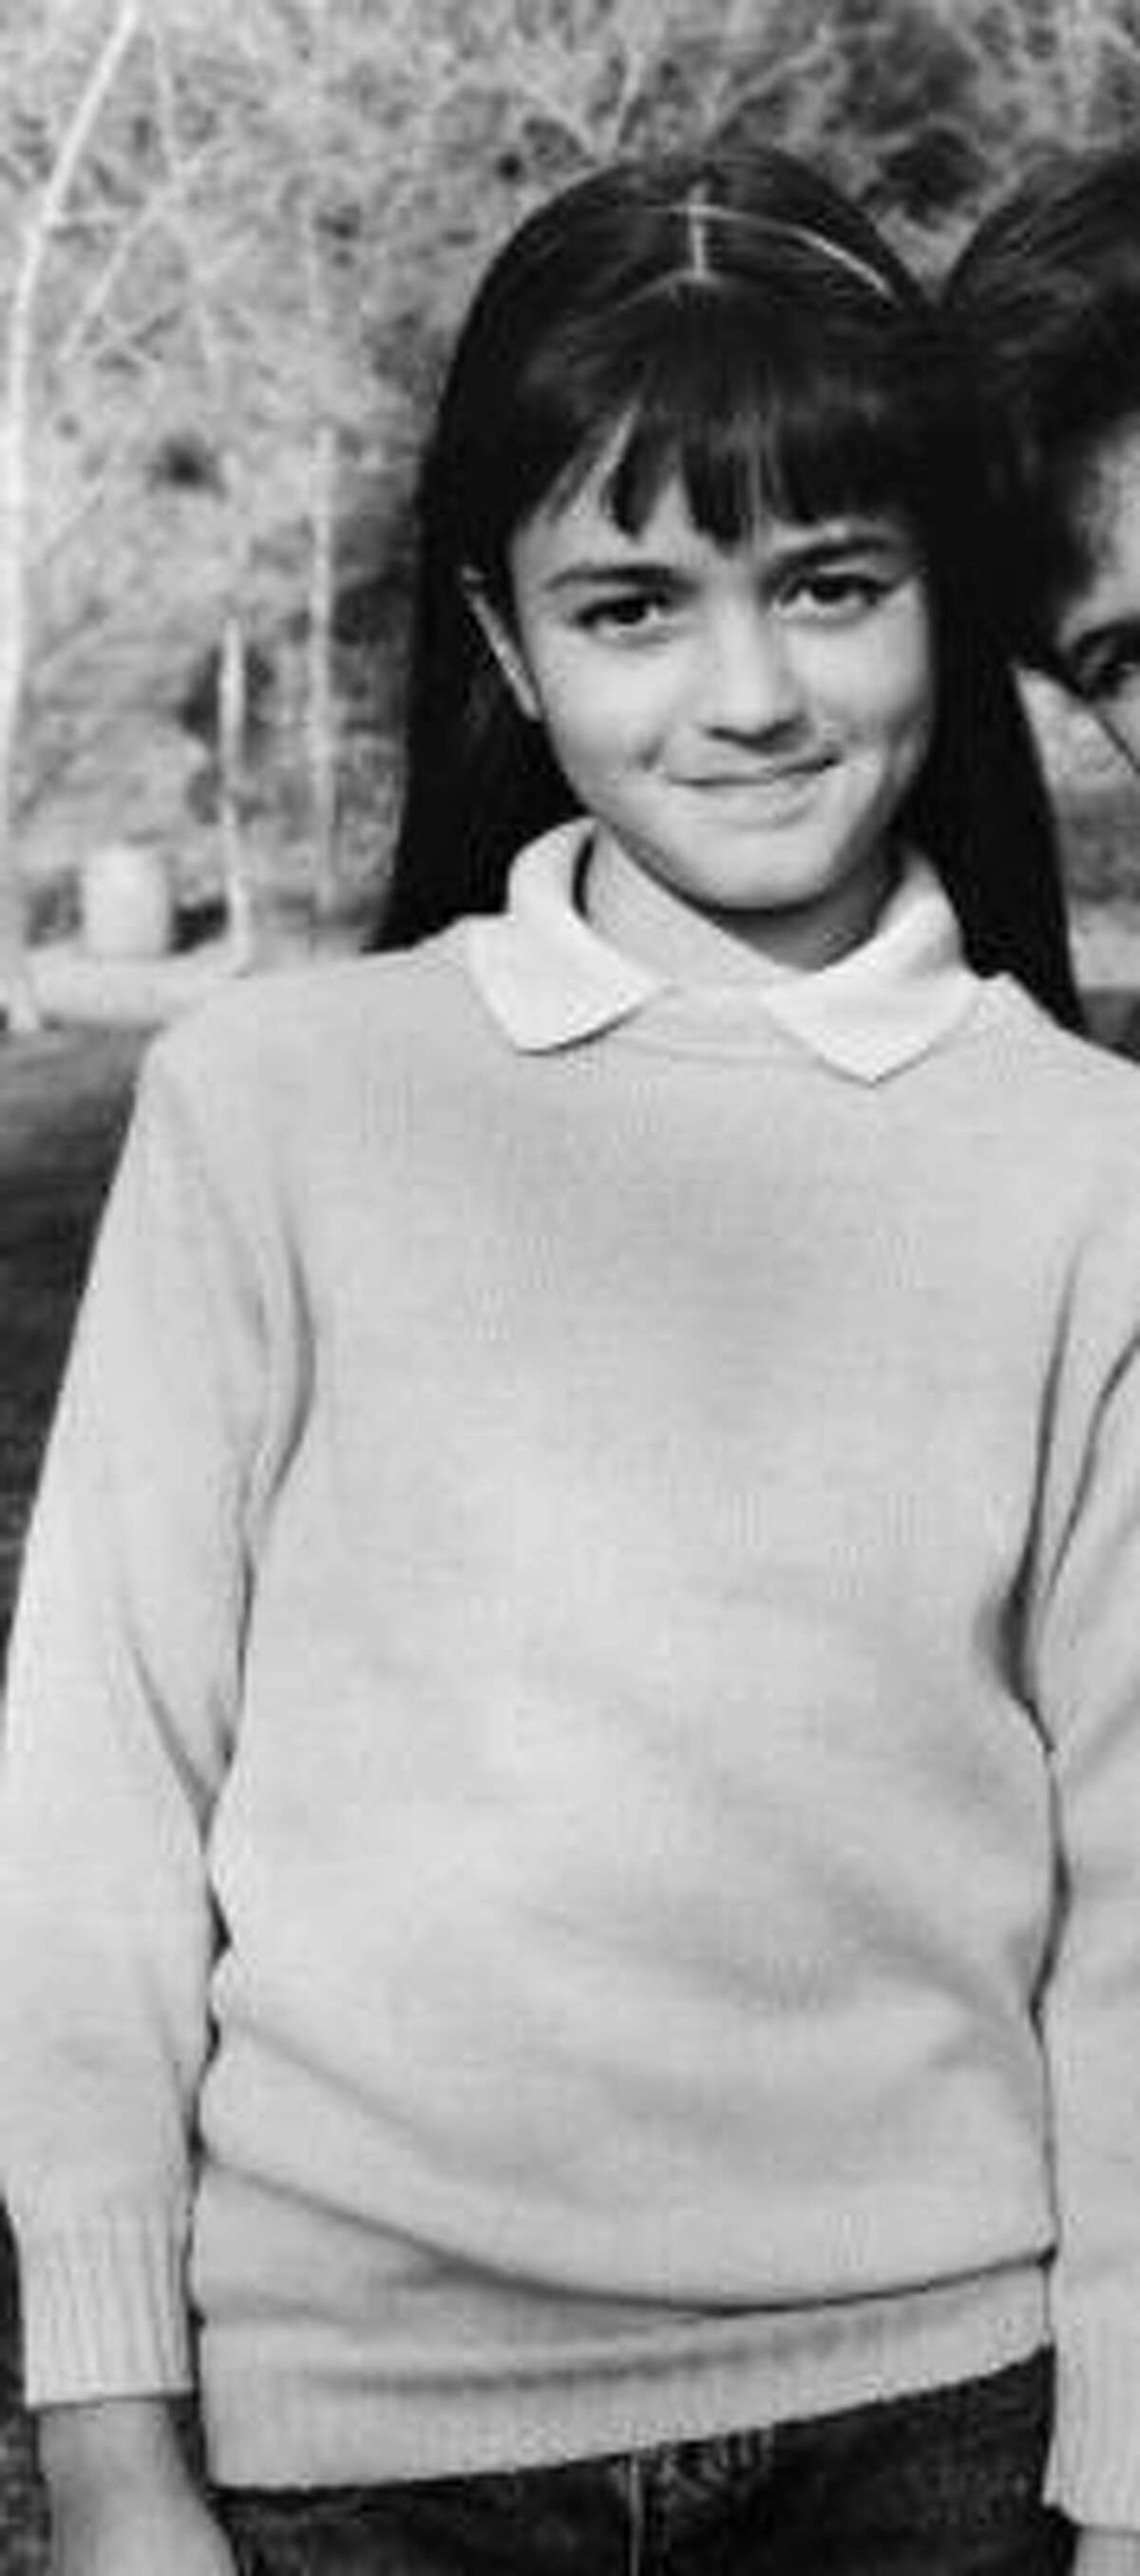 Danica McKellar, 1988, age 13. Sidekicks; The Wonder Years.